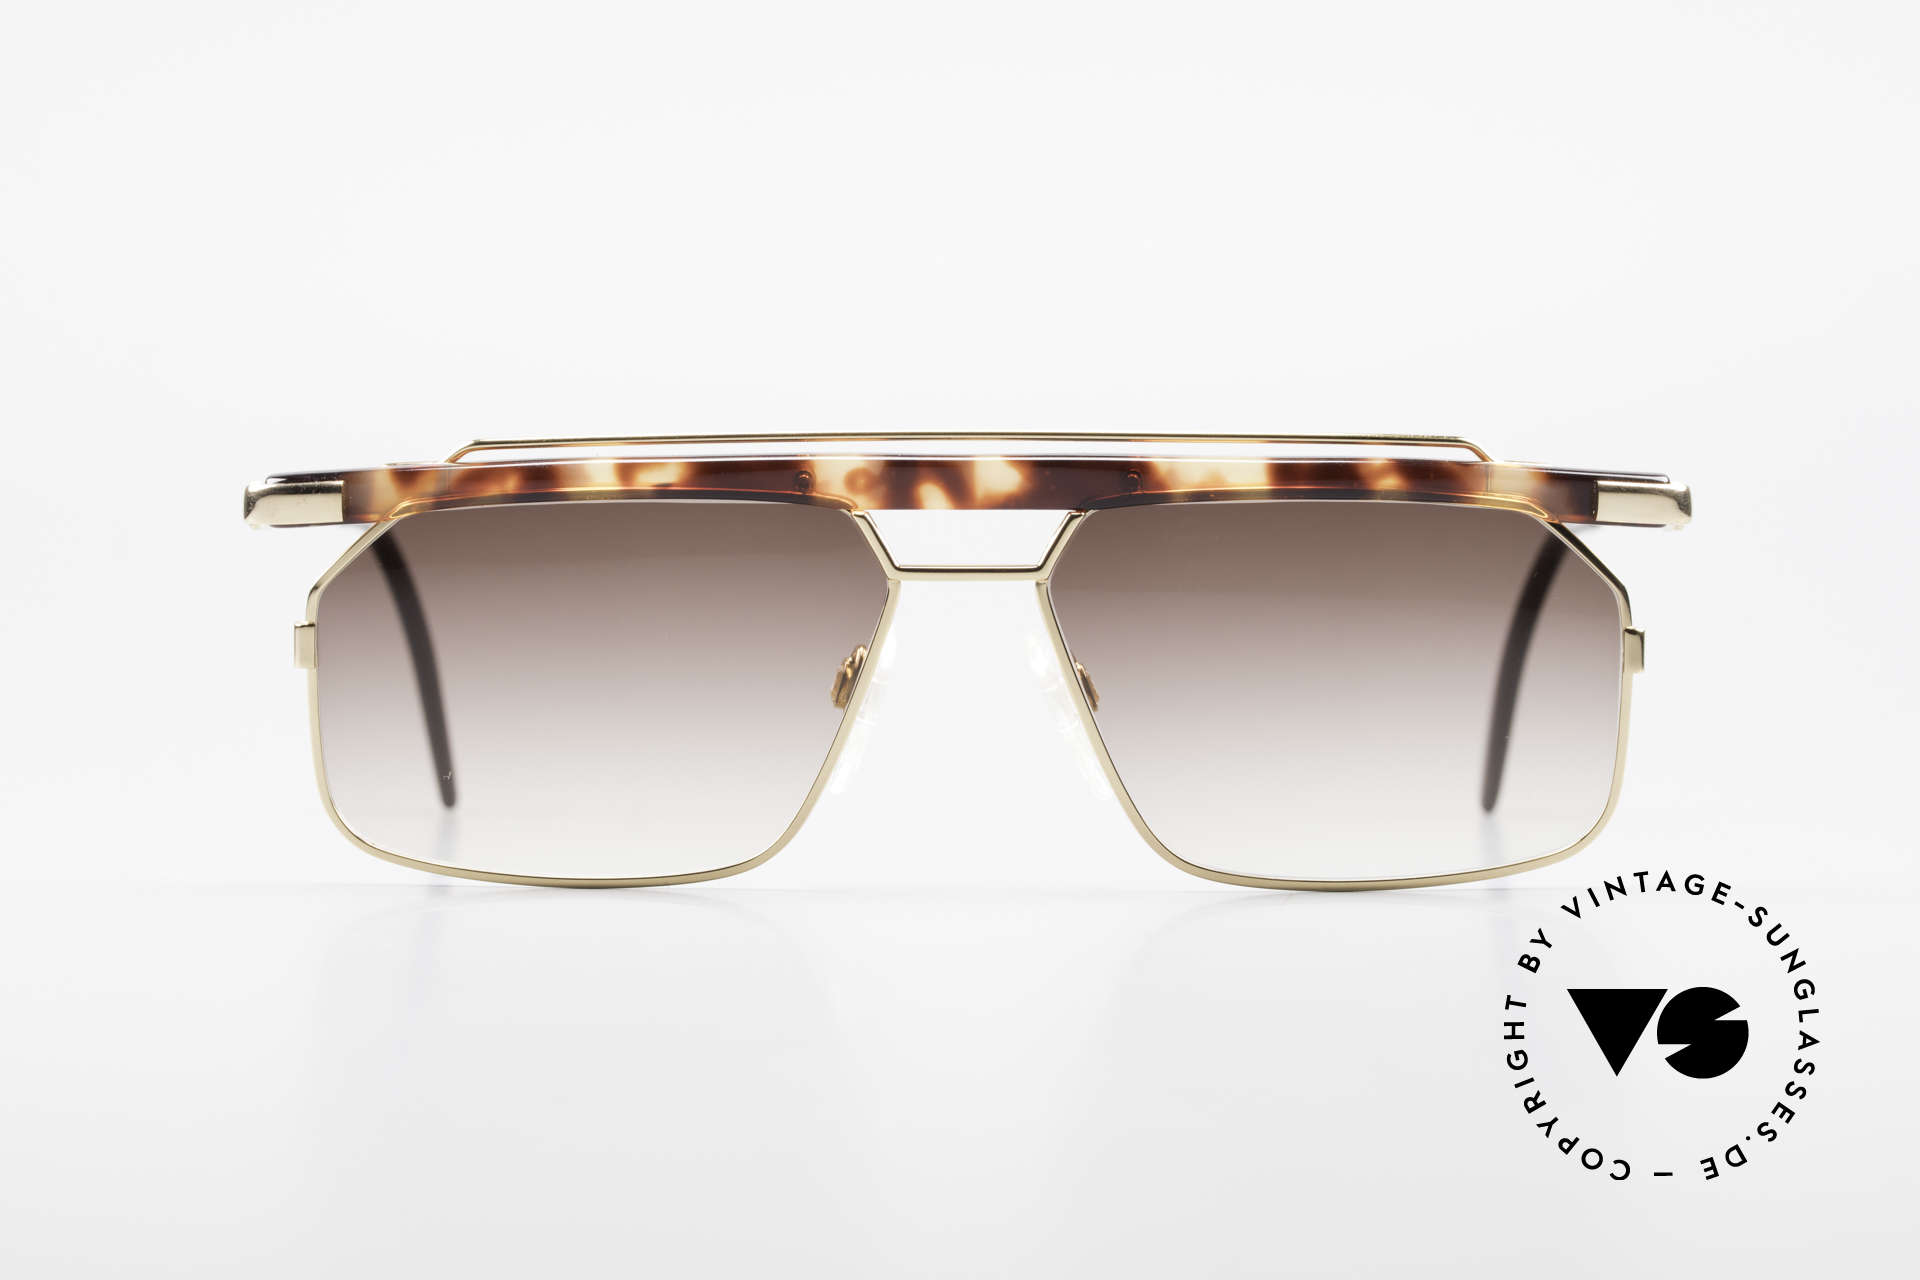 Cazal 752 Ultra Rare Vintage Shades 90's, one of the last models designed by CAri ZALloni, Made for Men